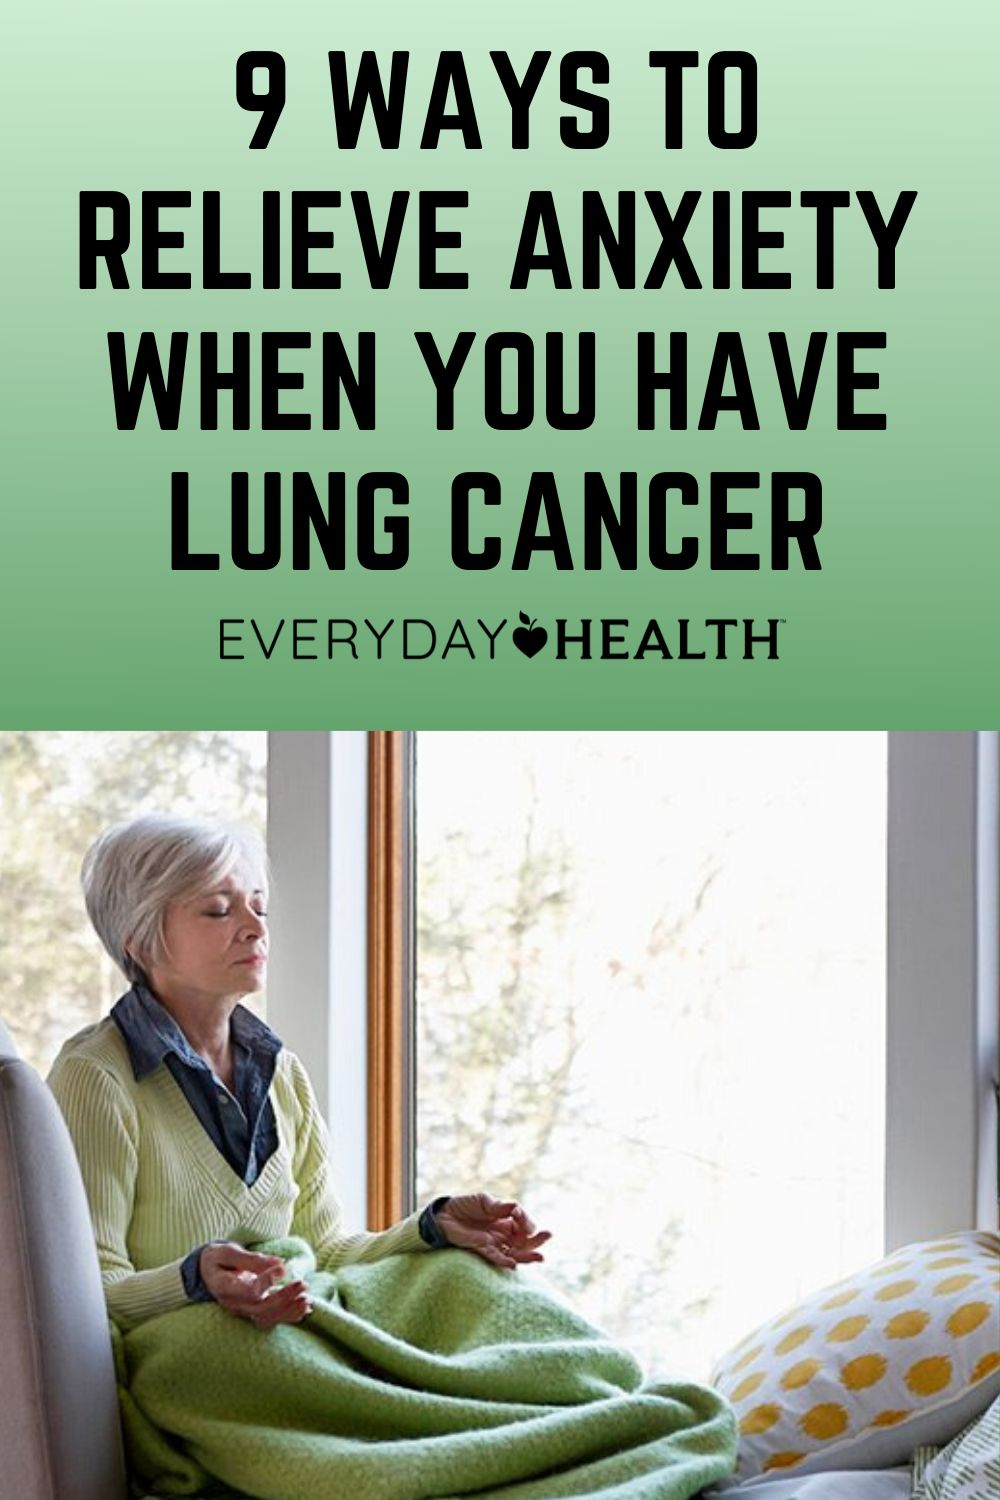 9 Ways to Relieve Anxiety When You Have Metastatic Non–Small Cell Lung Cancer